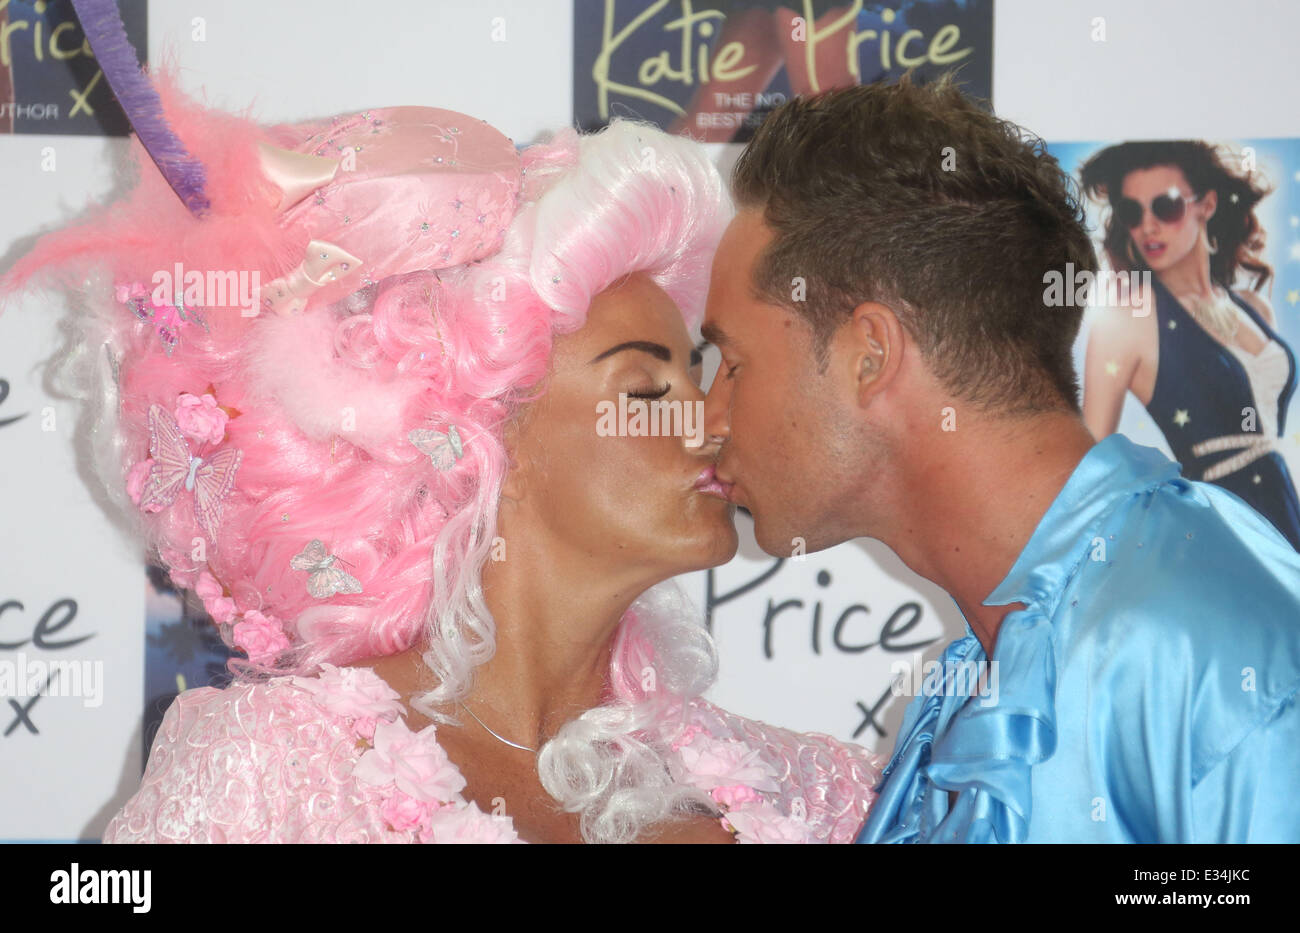 Katie price ehepartner